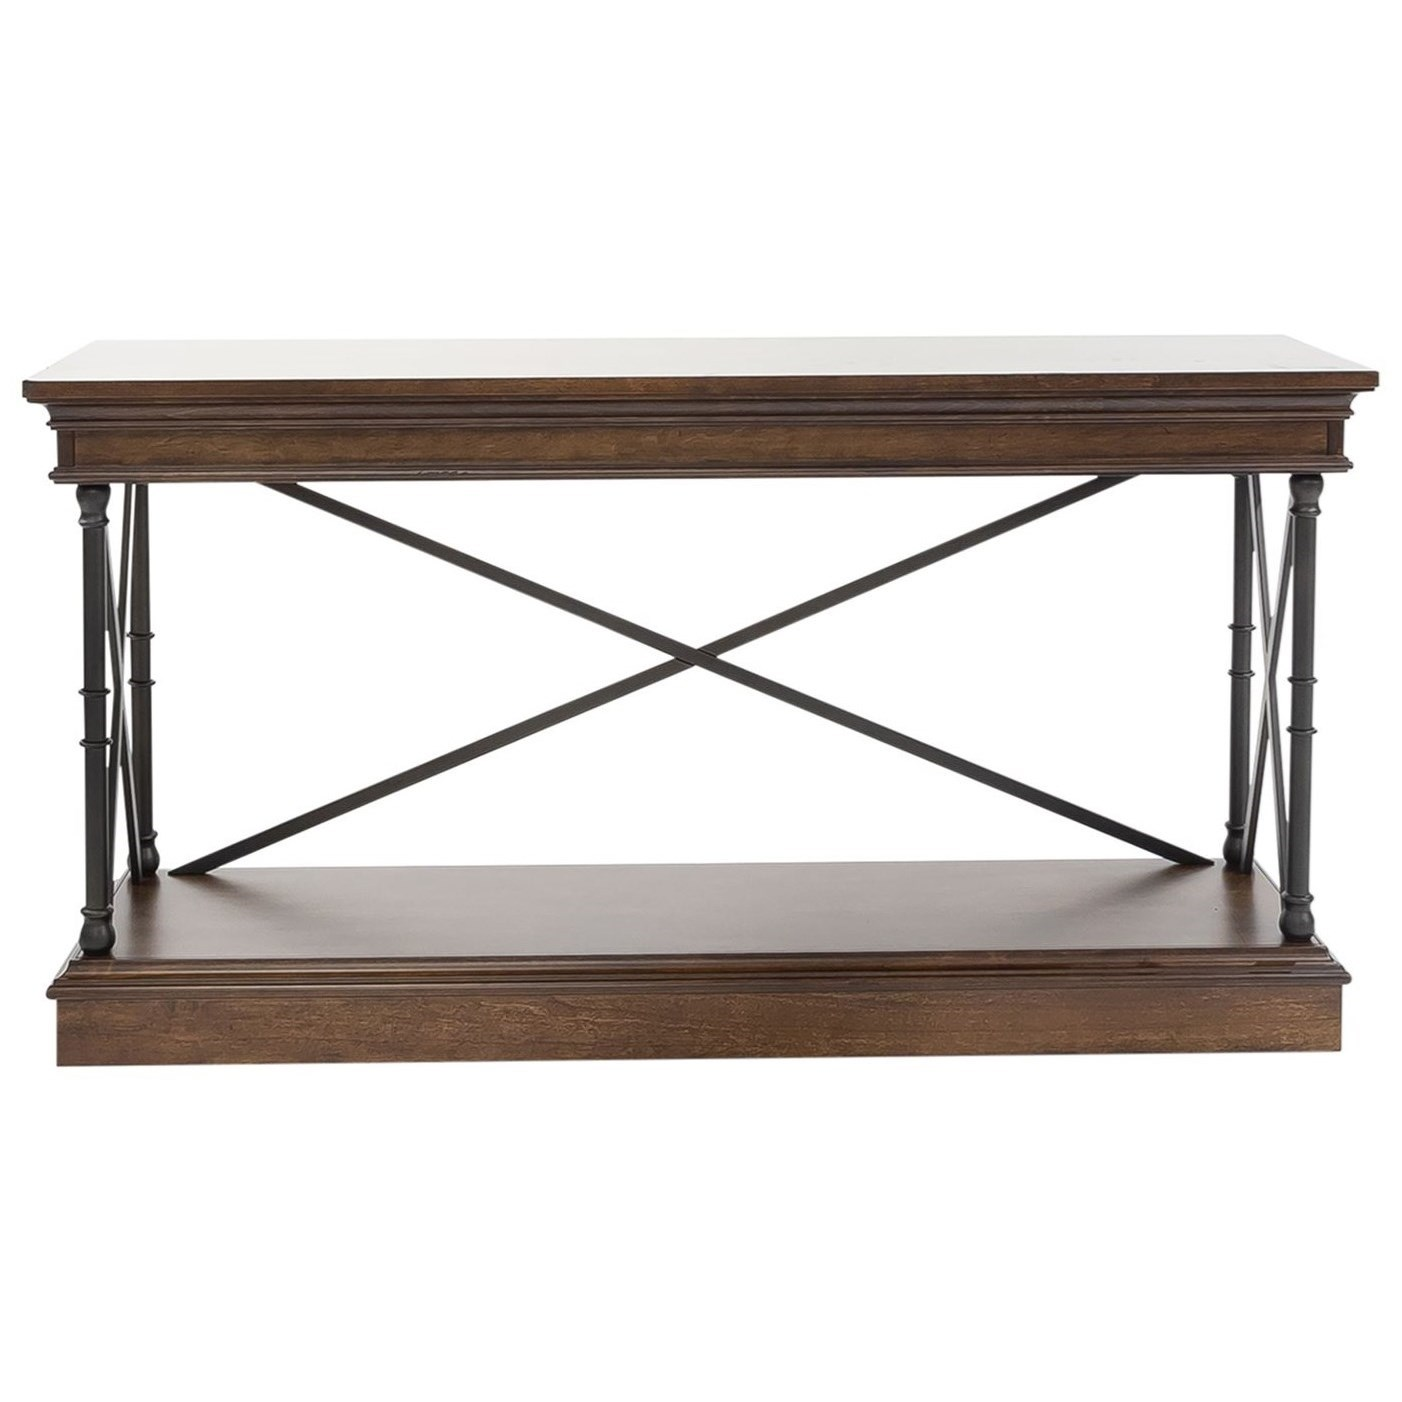 Tribeca Sofa Table by Libby at Walker's Furniture